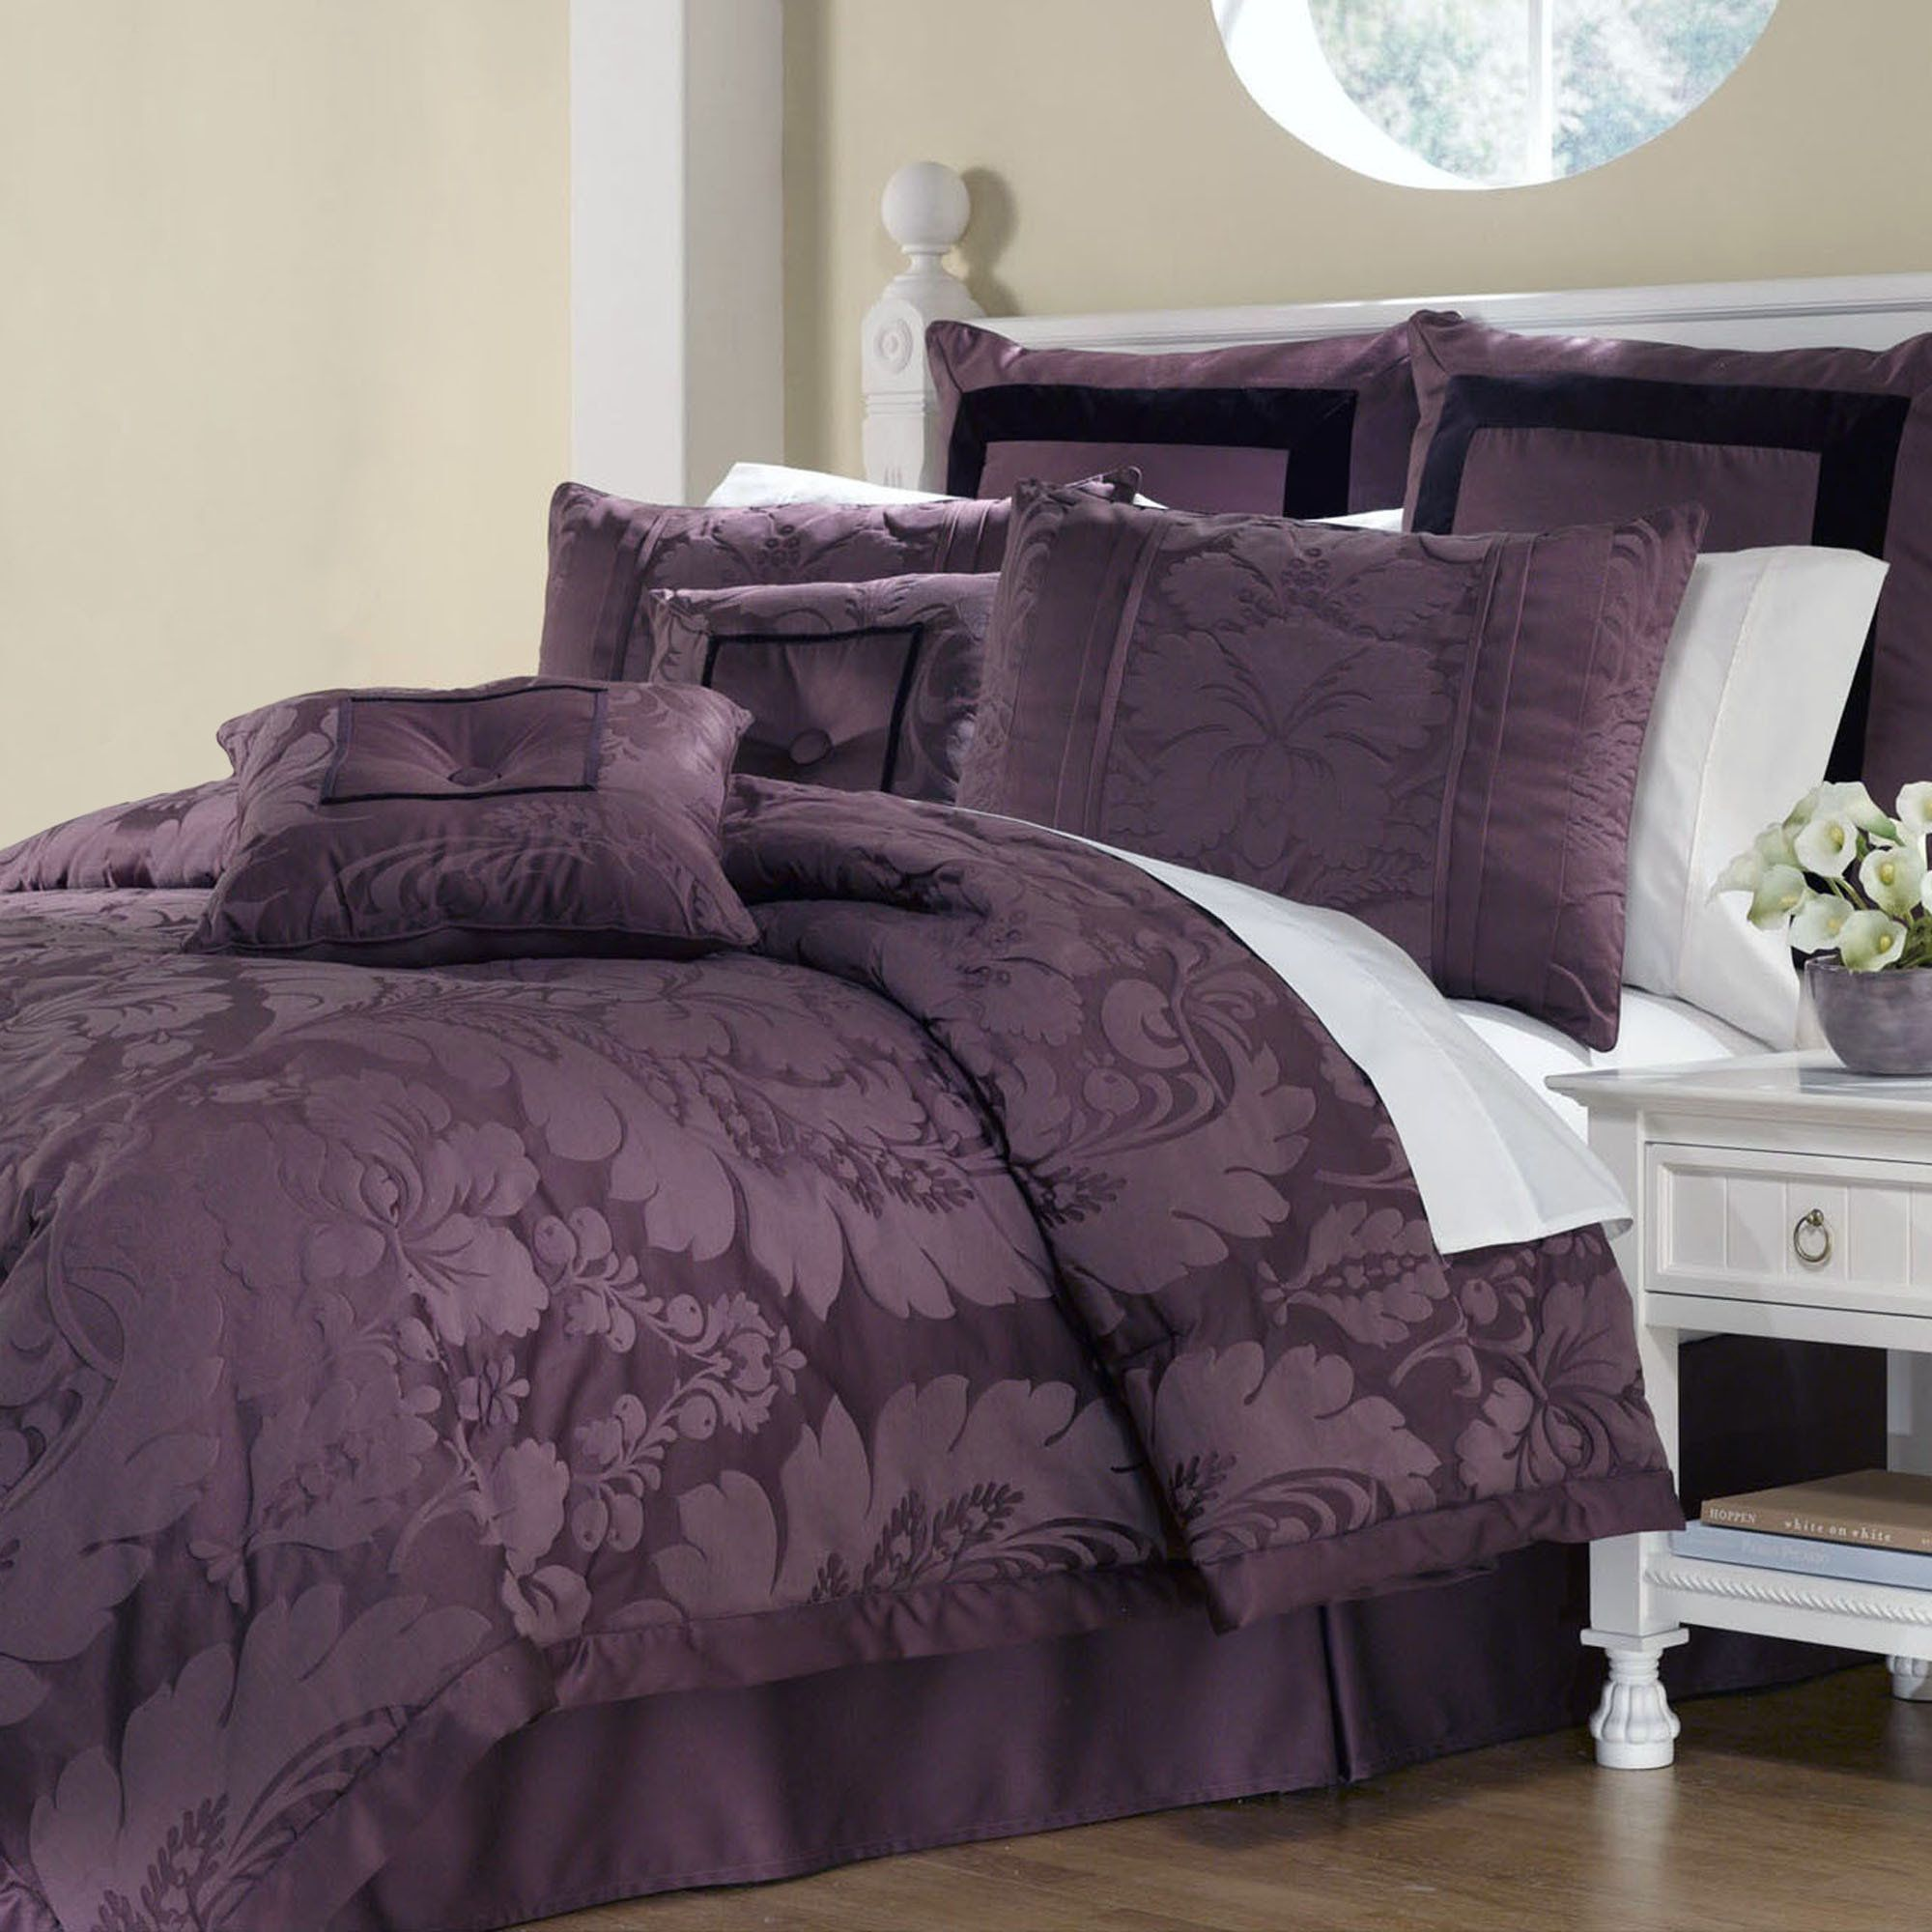 Lorenzo Damask 8 pc forter Bed Set